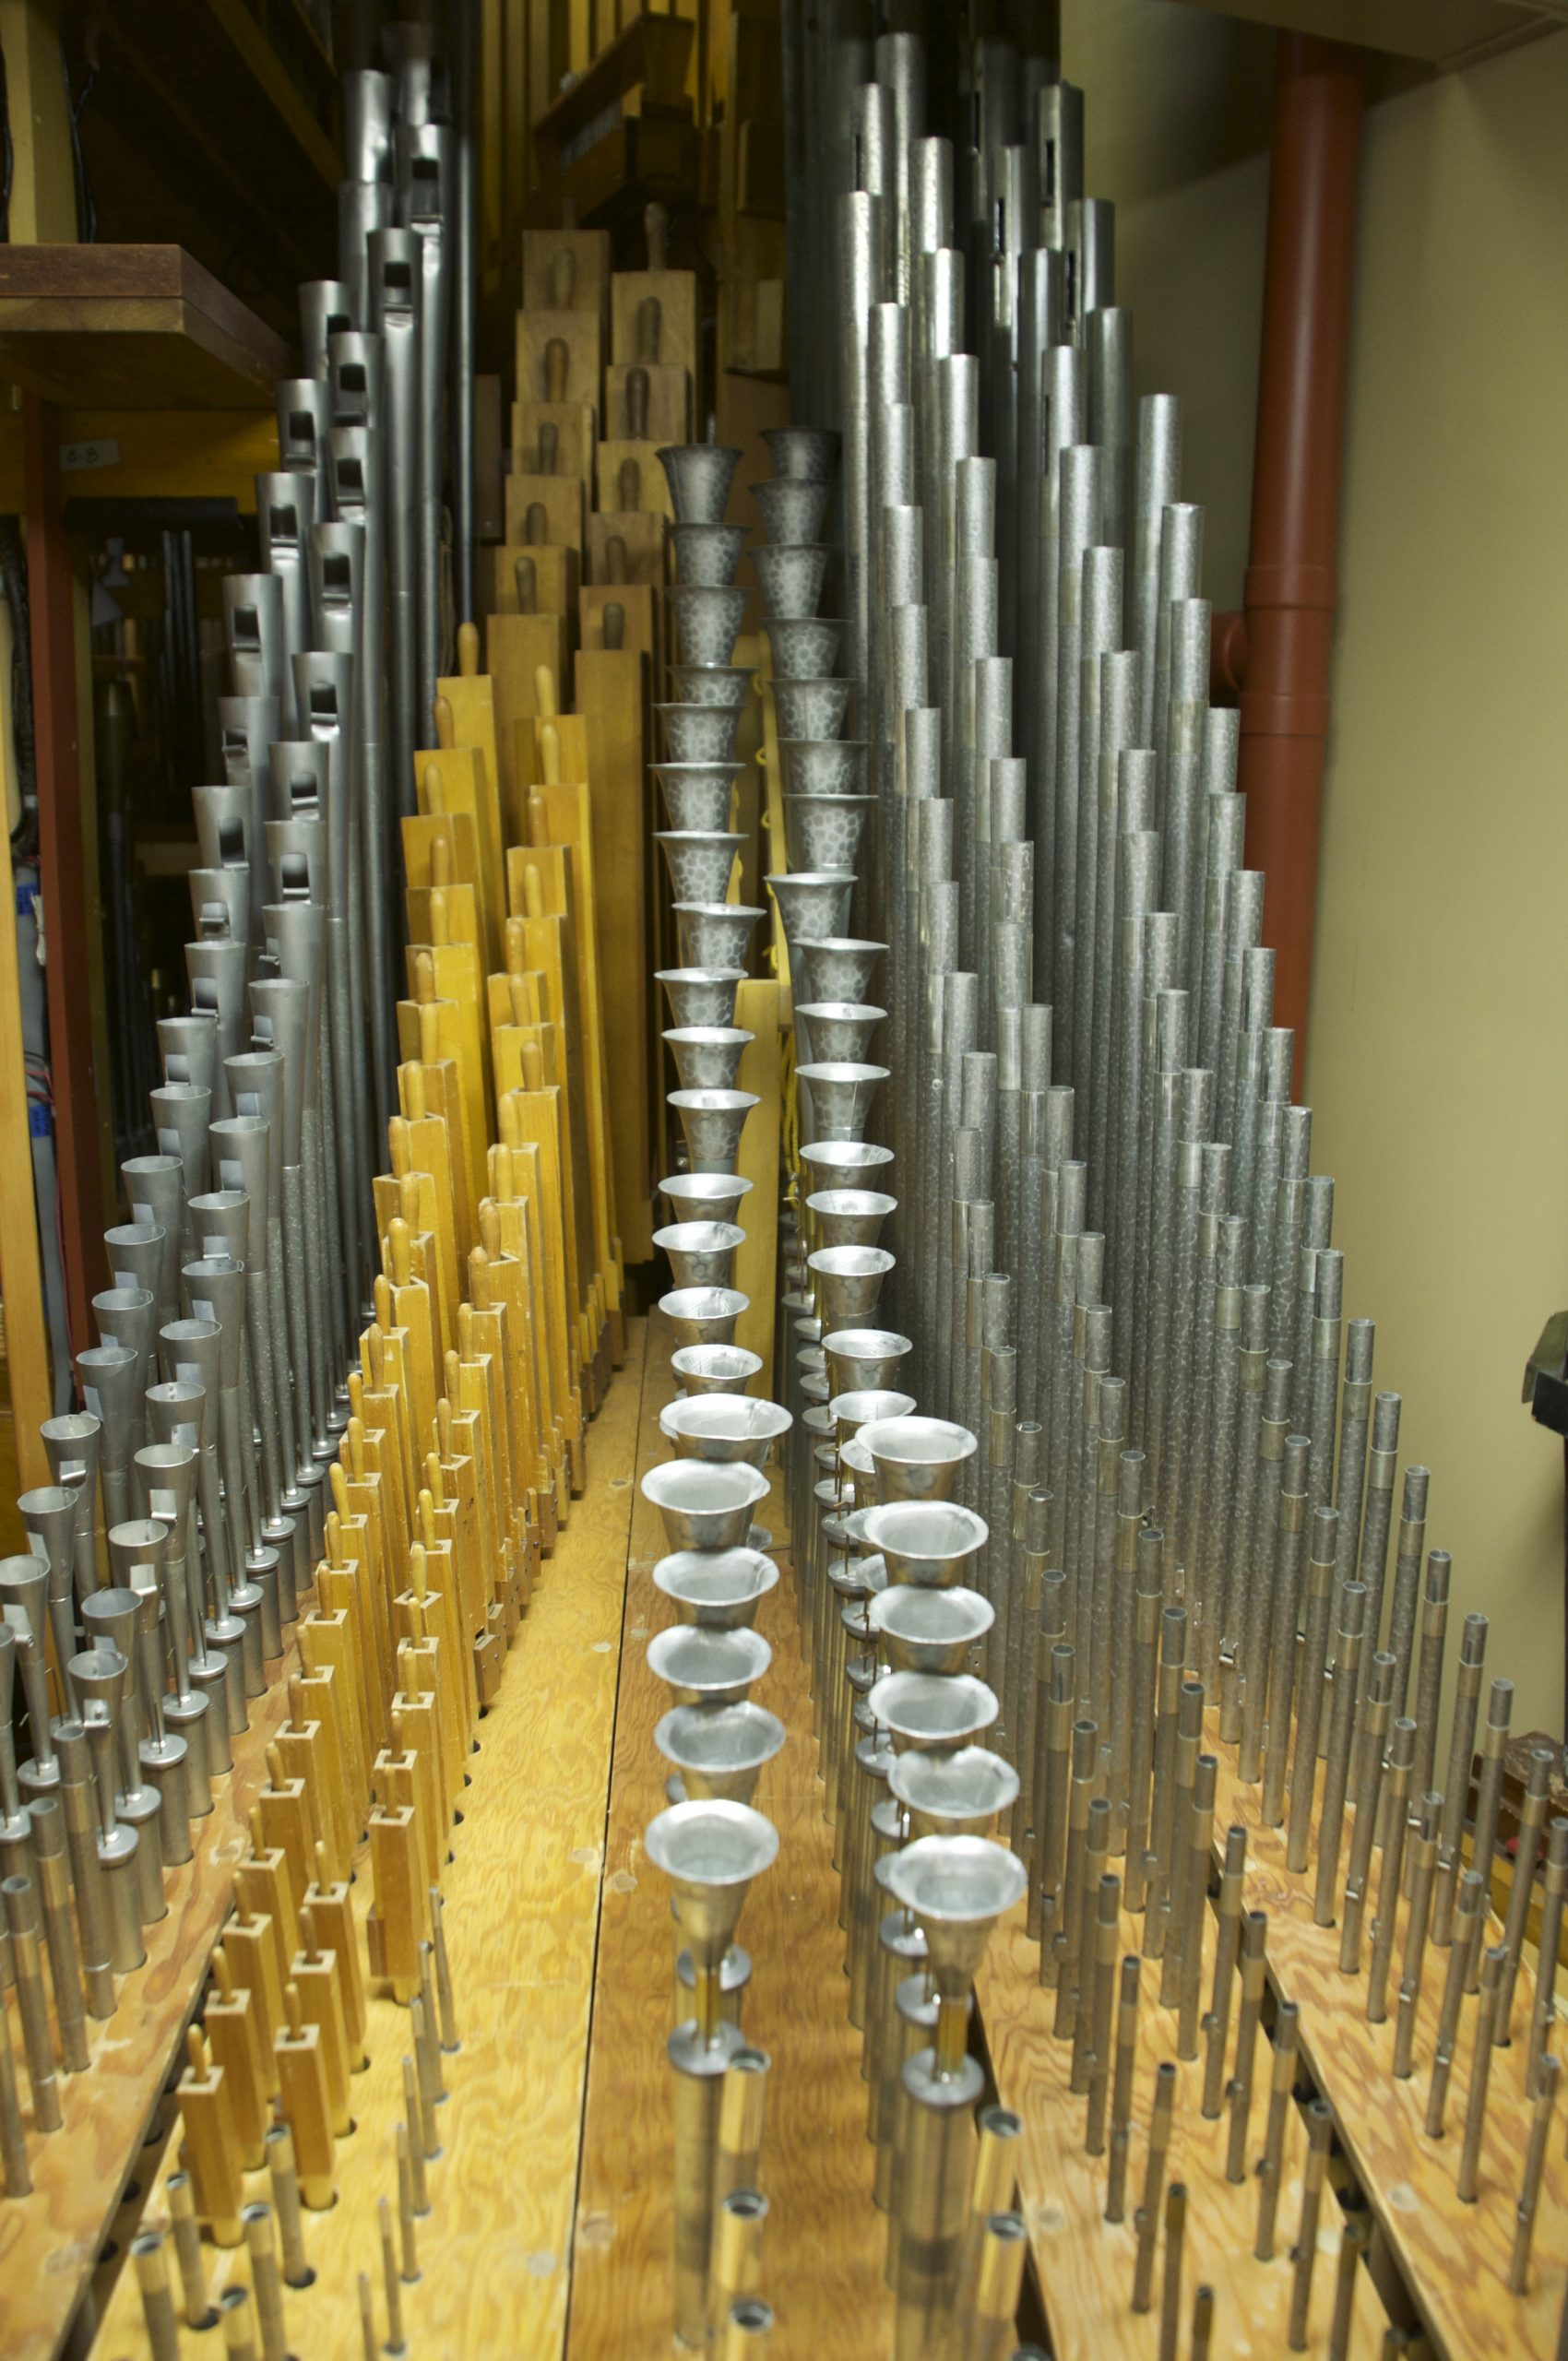 Some of the 2500 pipes that play the theater organ's many sounds